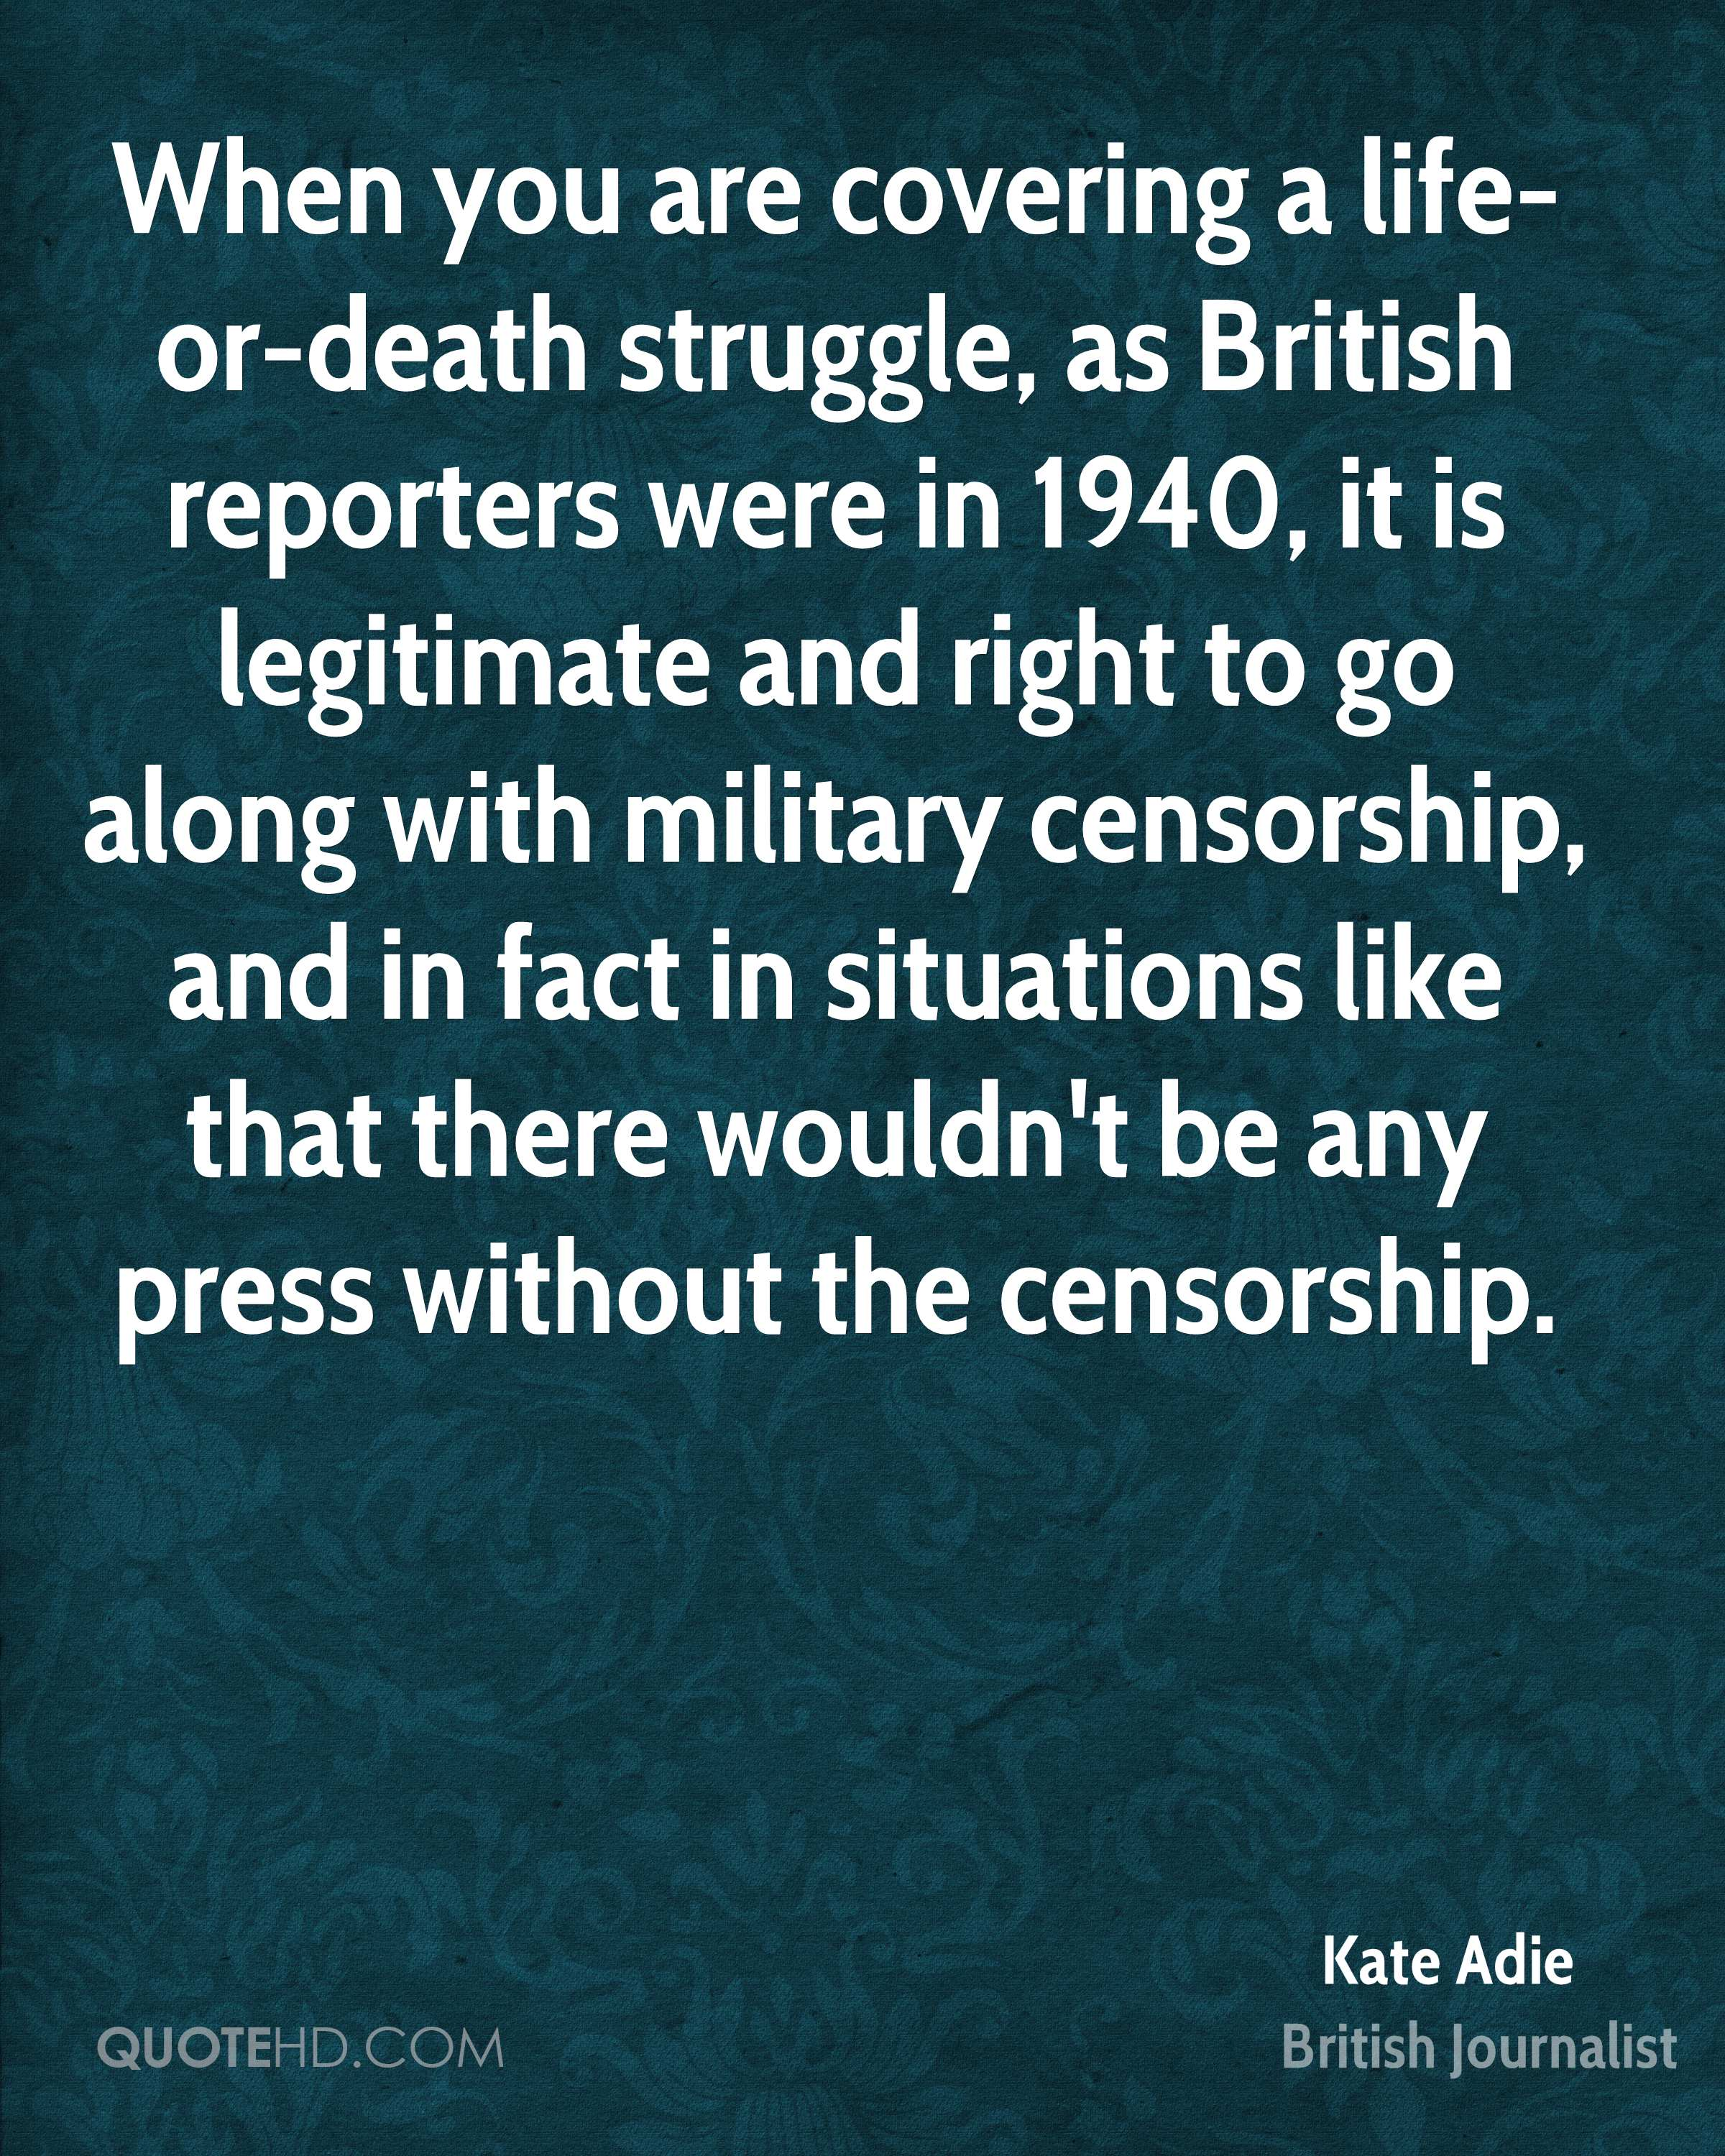 When you are covering a life-or-death struggle, as British reporters were in 1940, it is legitimate and right to go along with military censorship, and in fact in situations like that there wouldn't be any press without the censorship.